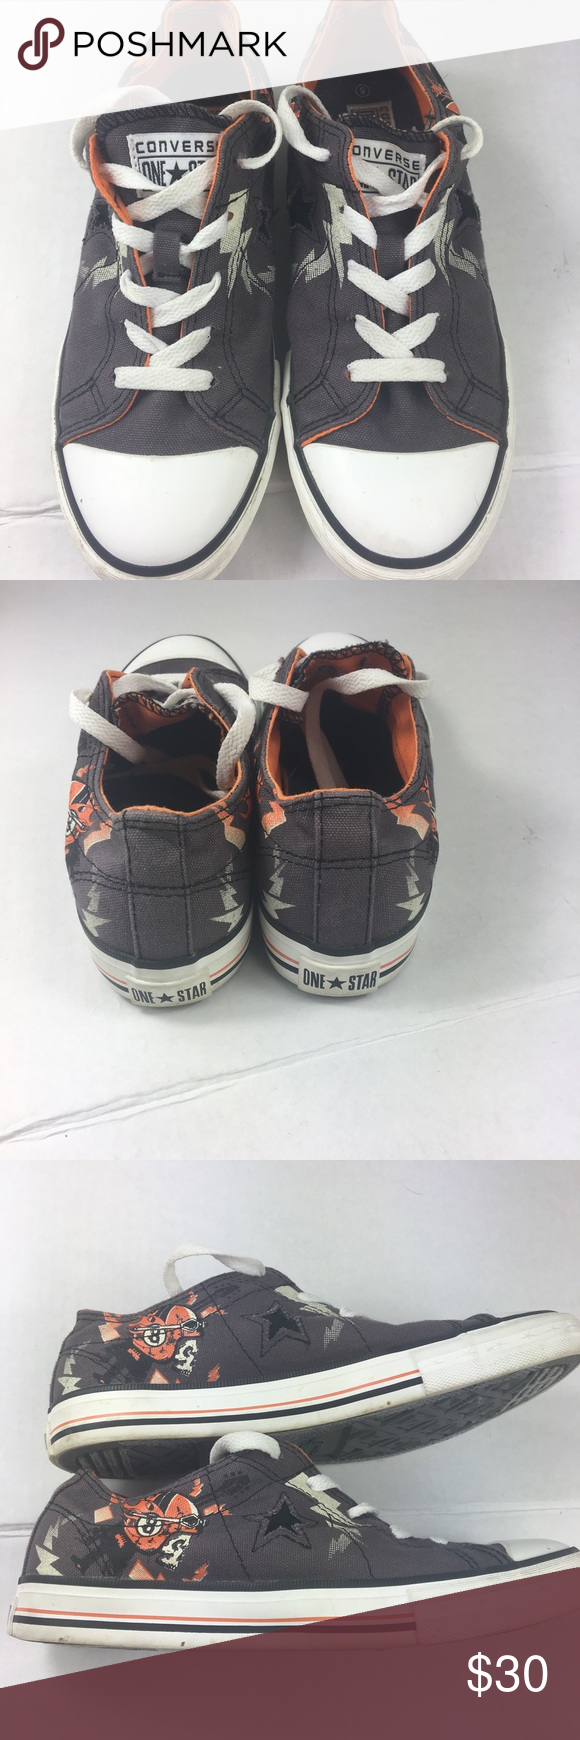 52c7c4203e96 Converse Youth Size 5 jr. Clevland Brown Sneakers Converse Youth Size 5 jr.  Clevland Brown Sneakers. Some dirt and wear as shown in photos. Converse  Shoes ...